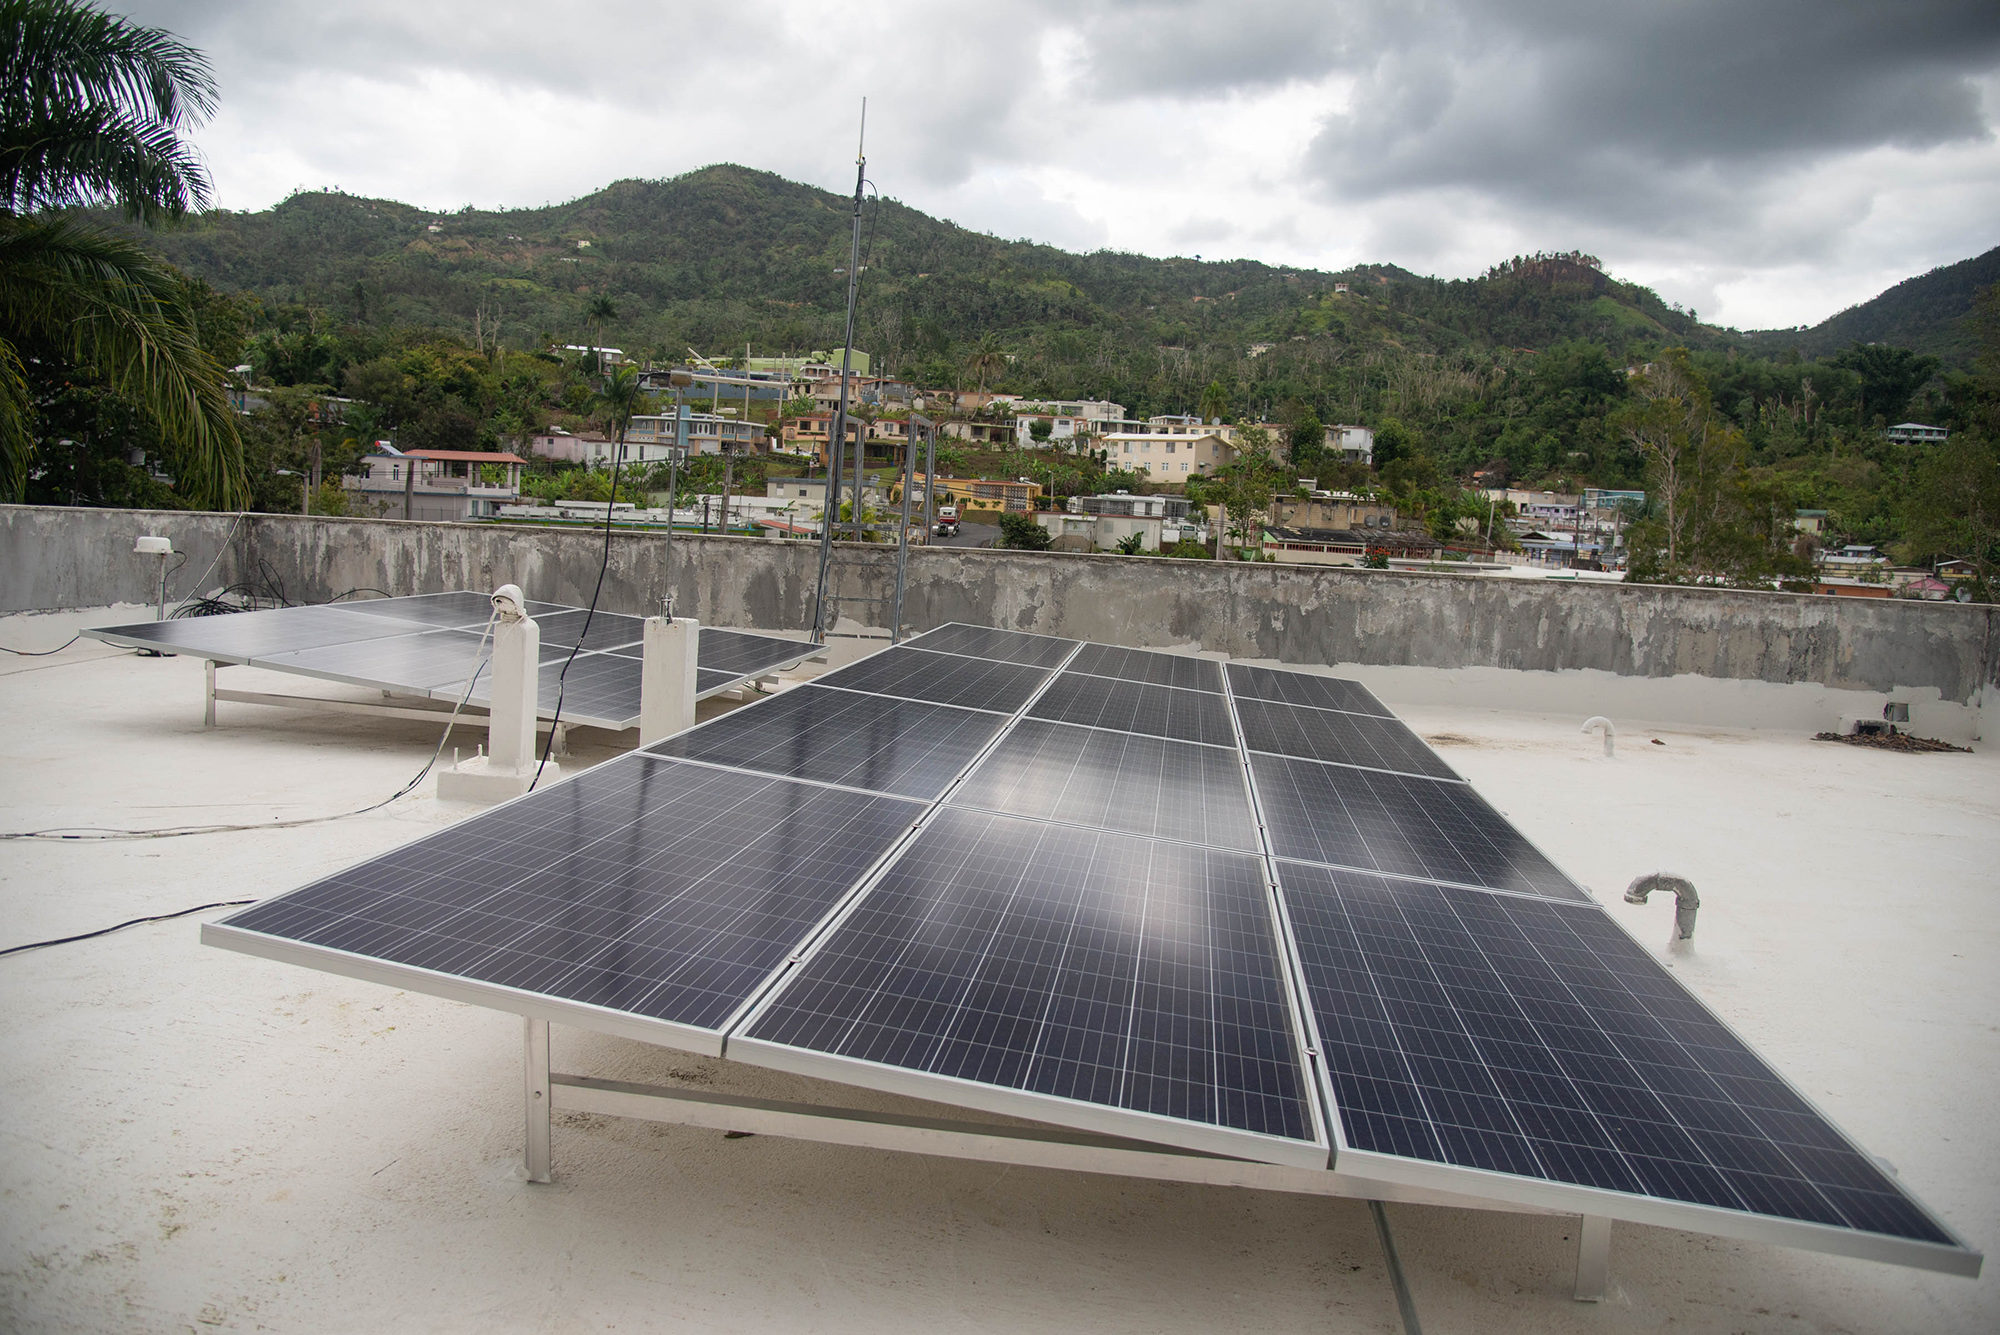 The firehouse in Adjuntas, Puerto Rico, has solar panels on the roof and a much reduced dependence on the commonwealth's energy grid. Photo by Valerie Welch